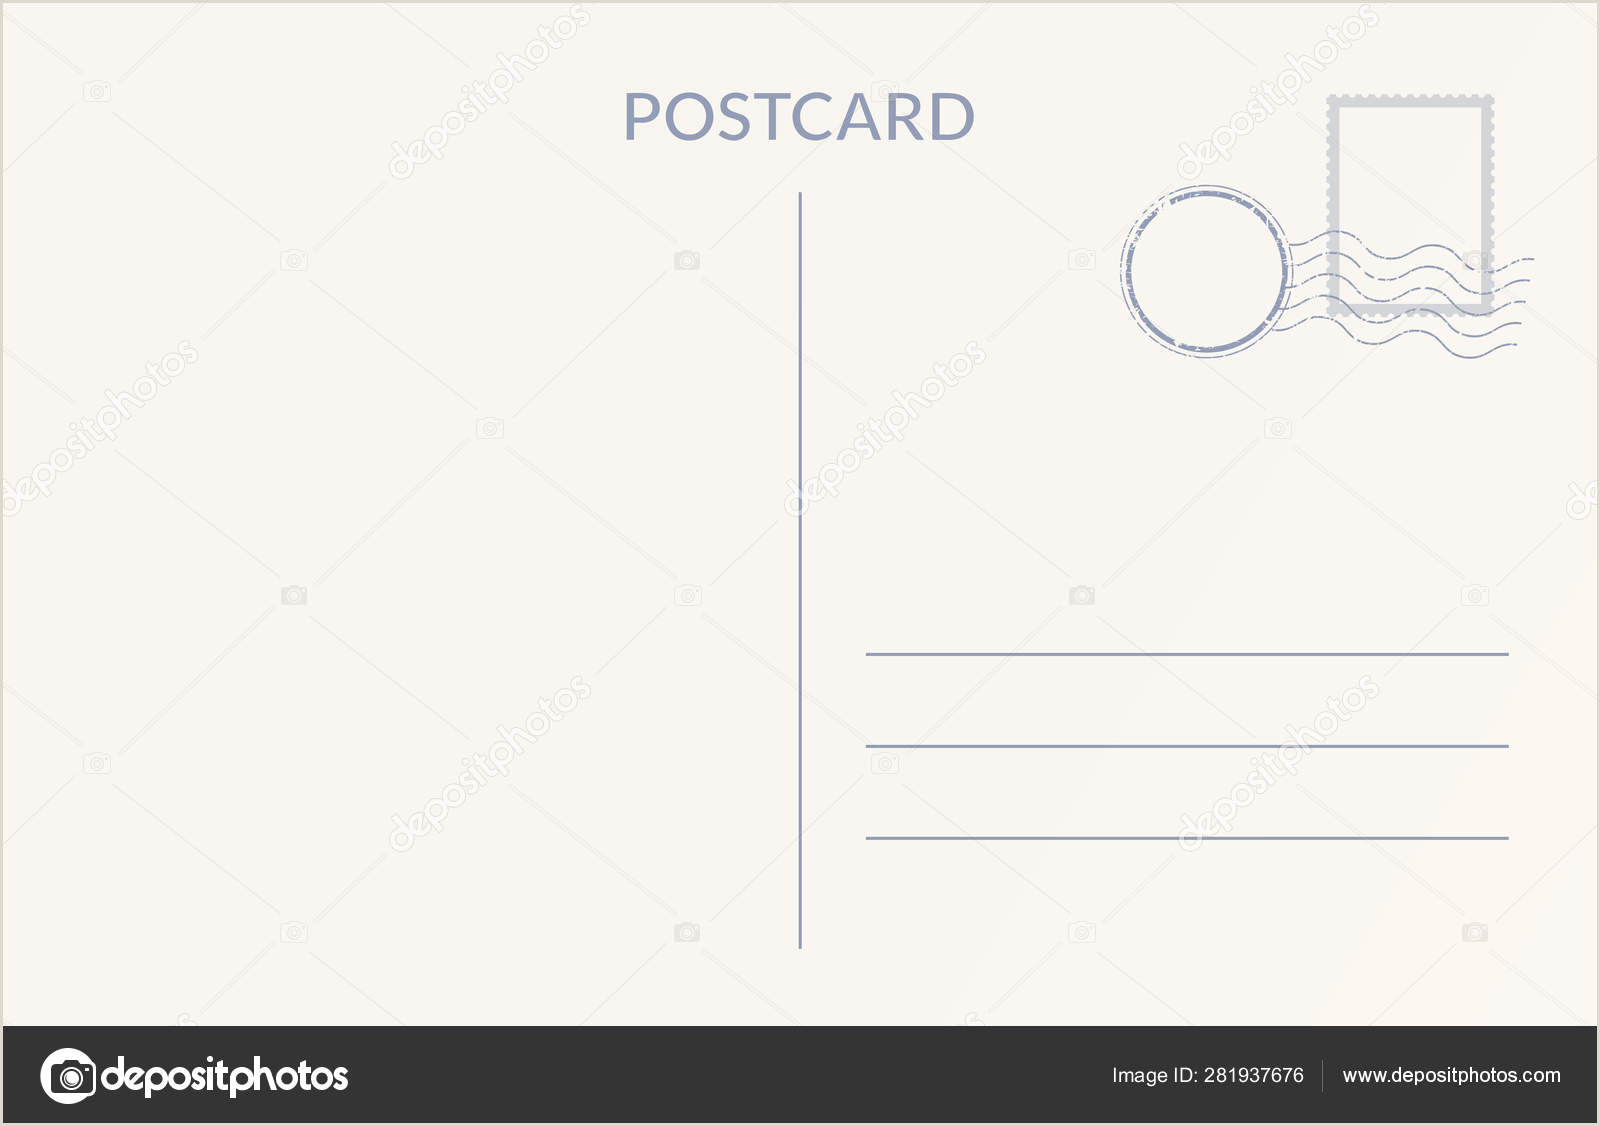 Post It Business Cards Empty Postcard Template Design Of Blank Post Card Back